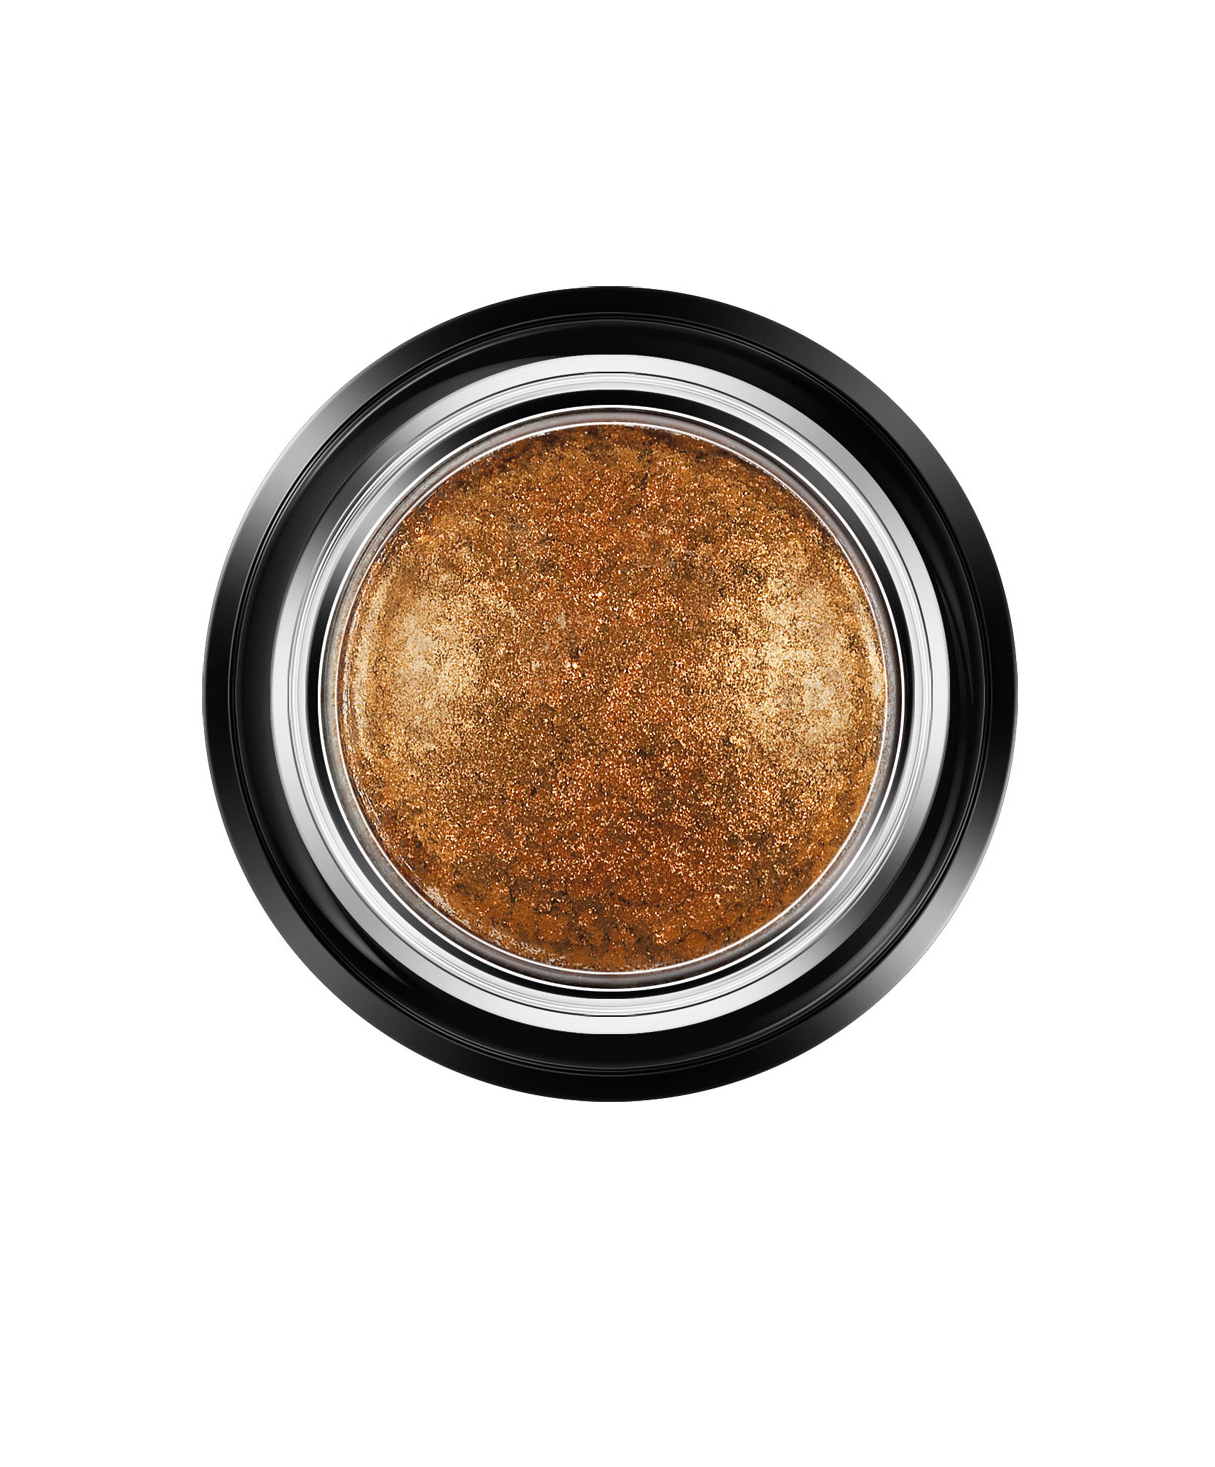 Armani Intense to kill eyeshadow